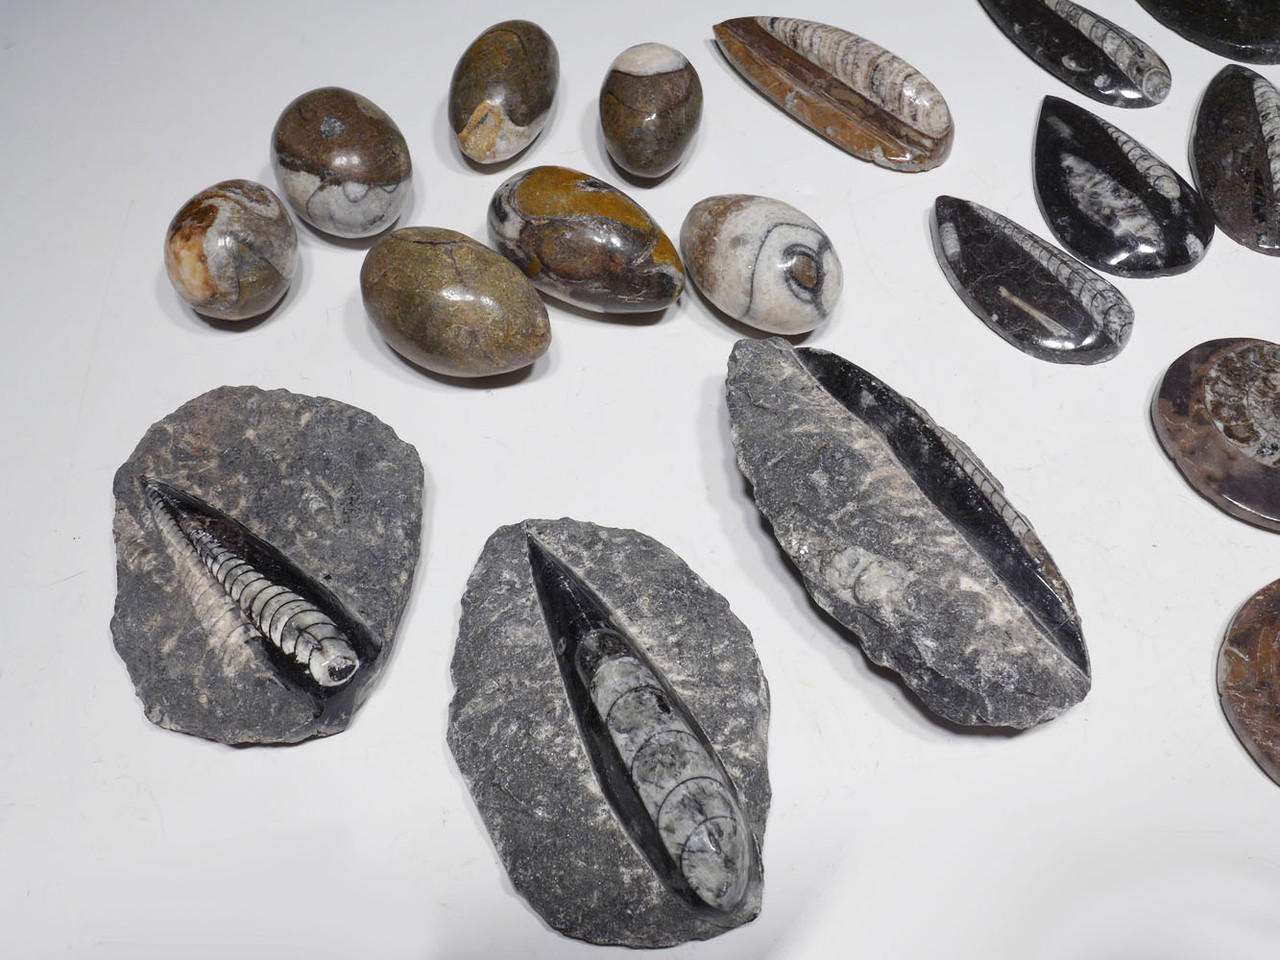 28 PIECE POLISHED FOSSIL GIFT OR TEACHING EDUCATION COLLECTION  *SW77